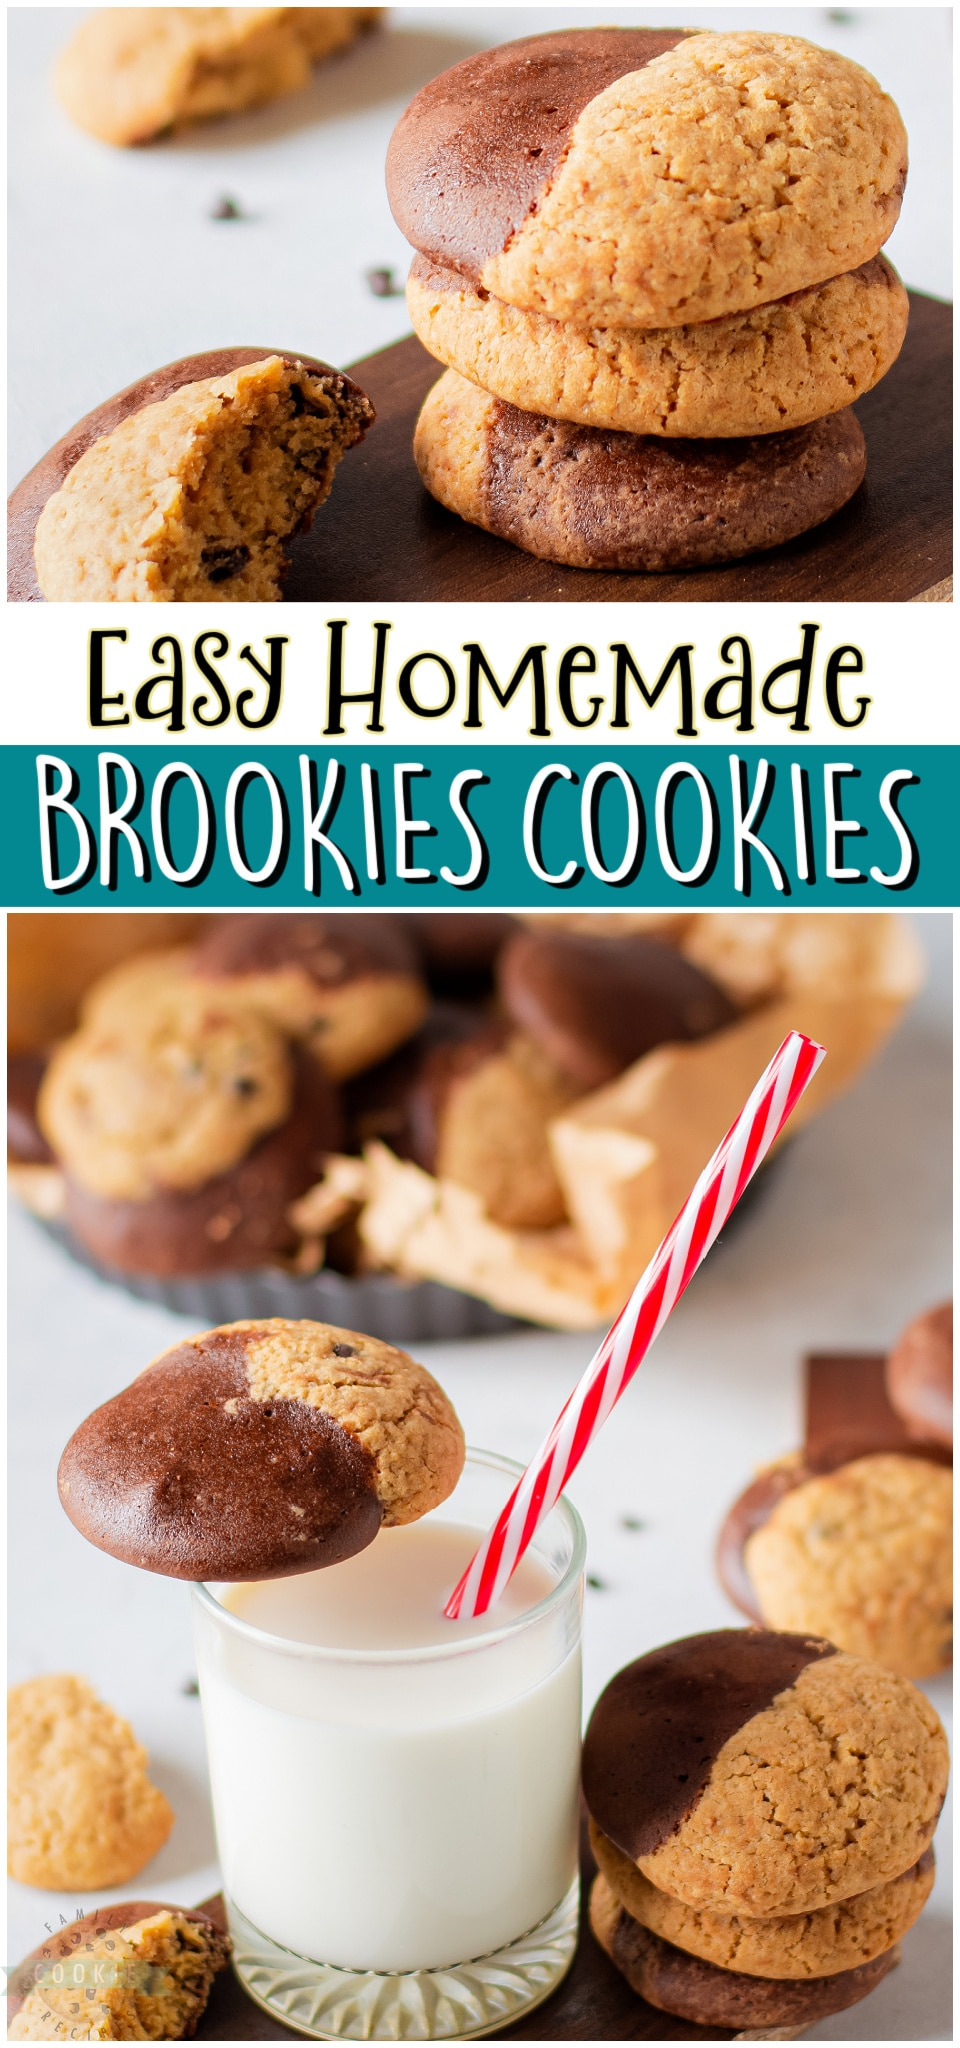 Brookies Cookies are the BEST combination of brownies & chocolate chip cookies! Homemade Brookies with great buttery, chocolate flavor for the perfect dessert! via @buttergirls